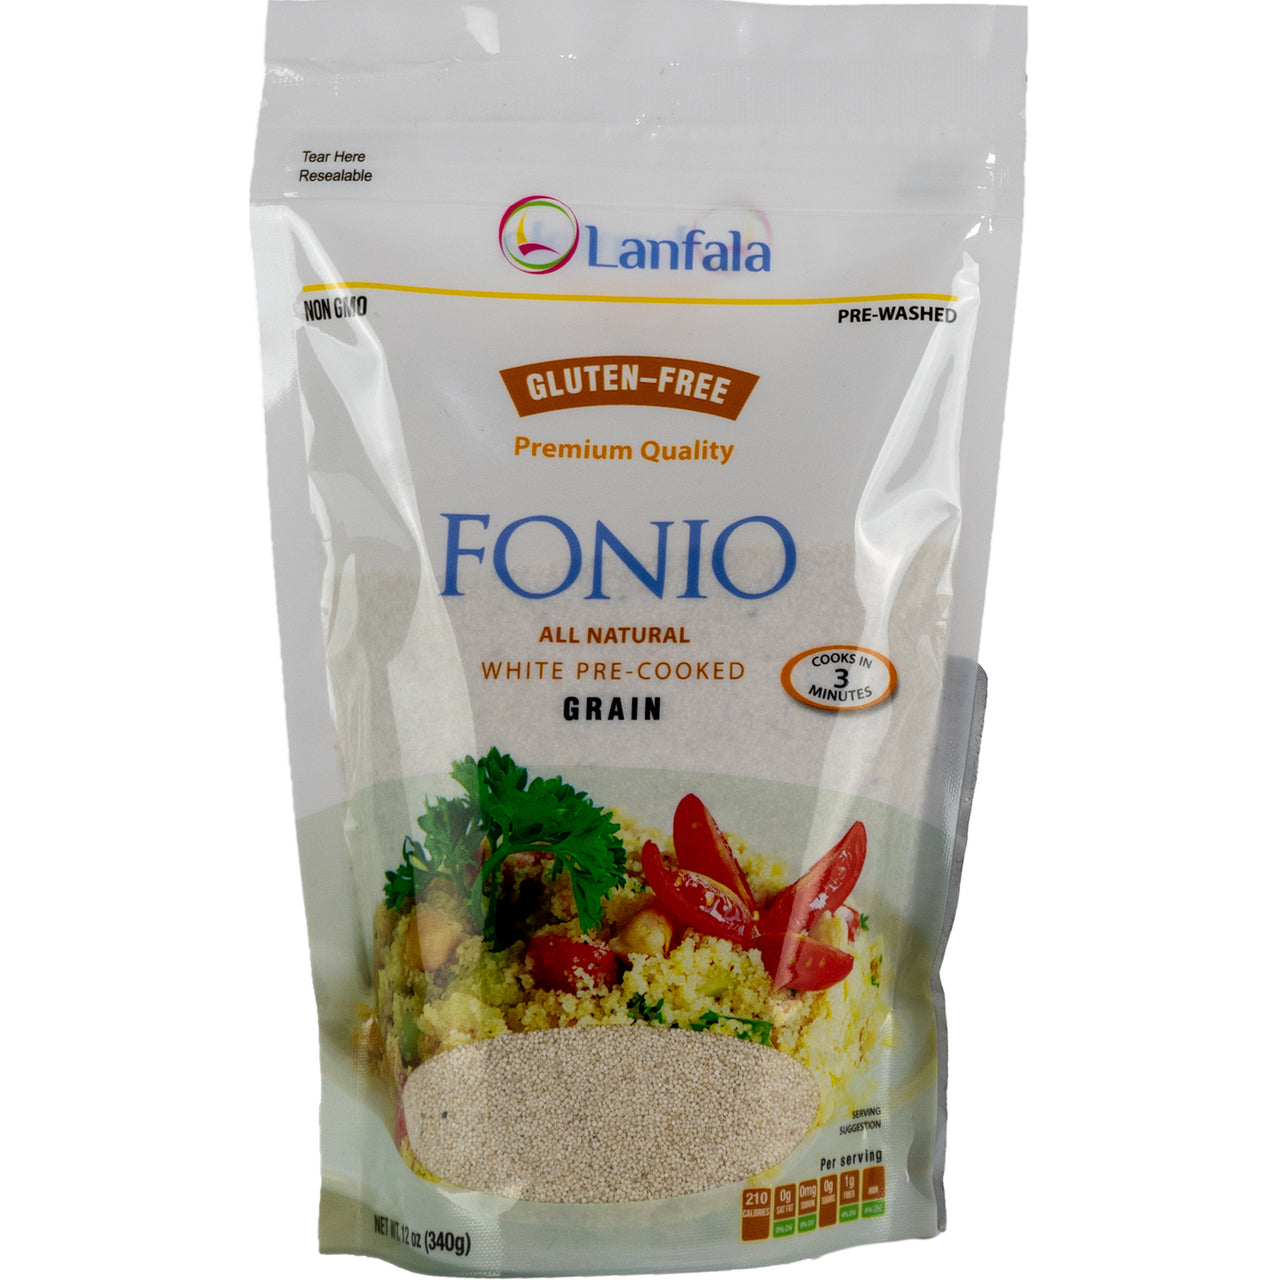 Sale: Lanfala Fonio - 50% Off